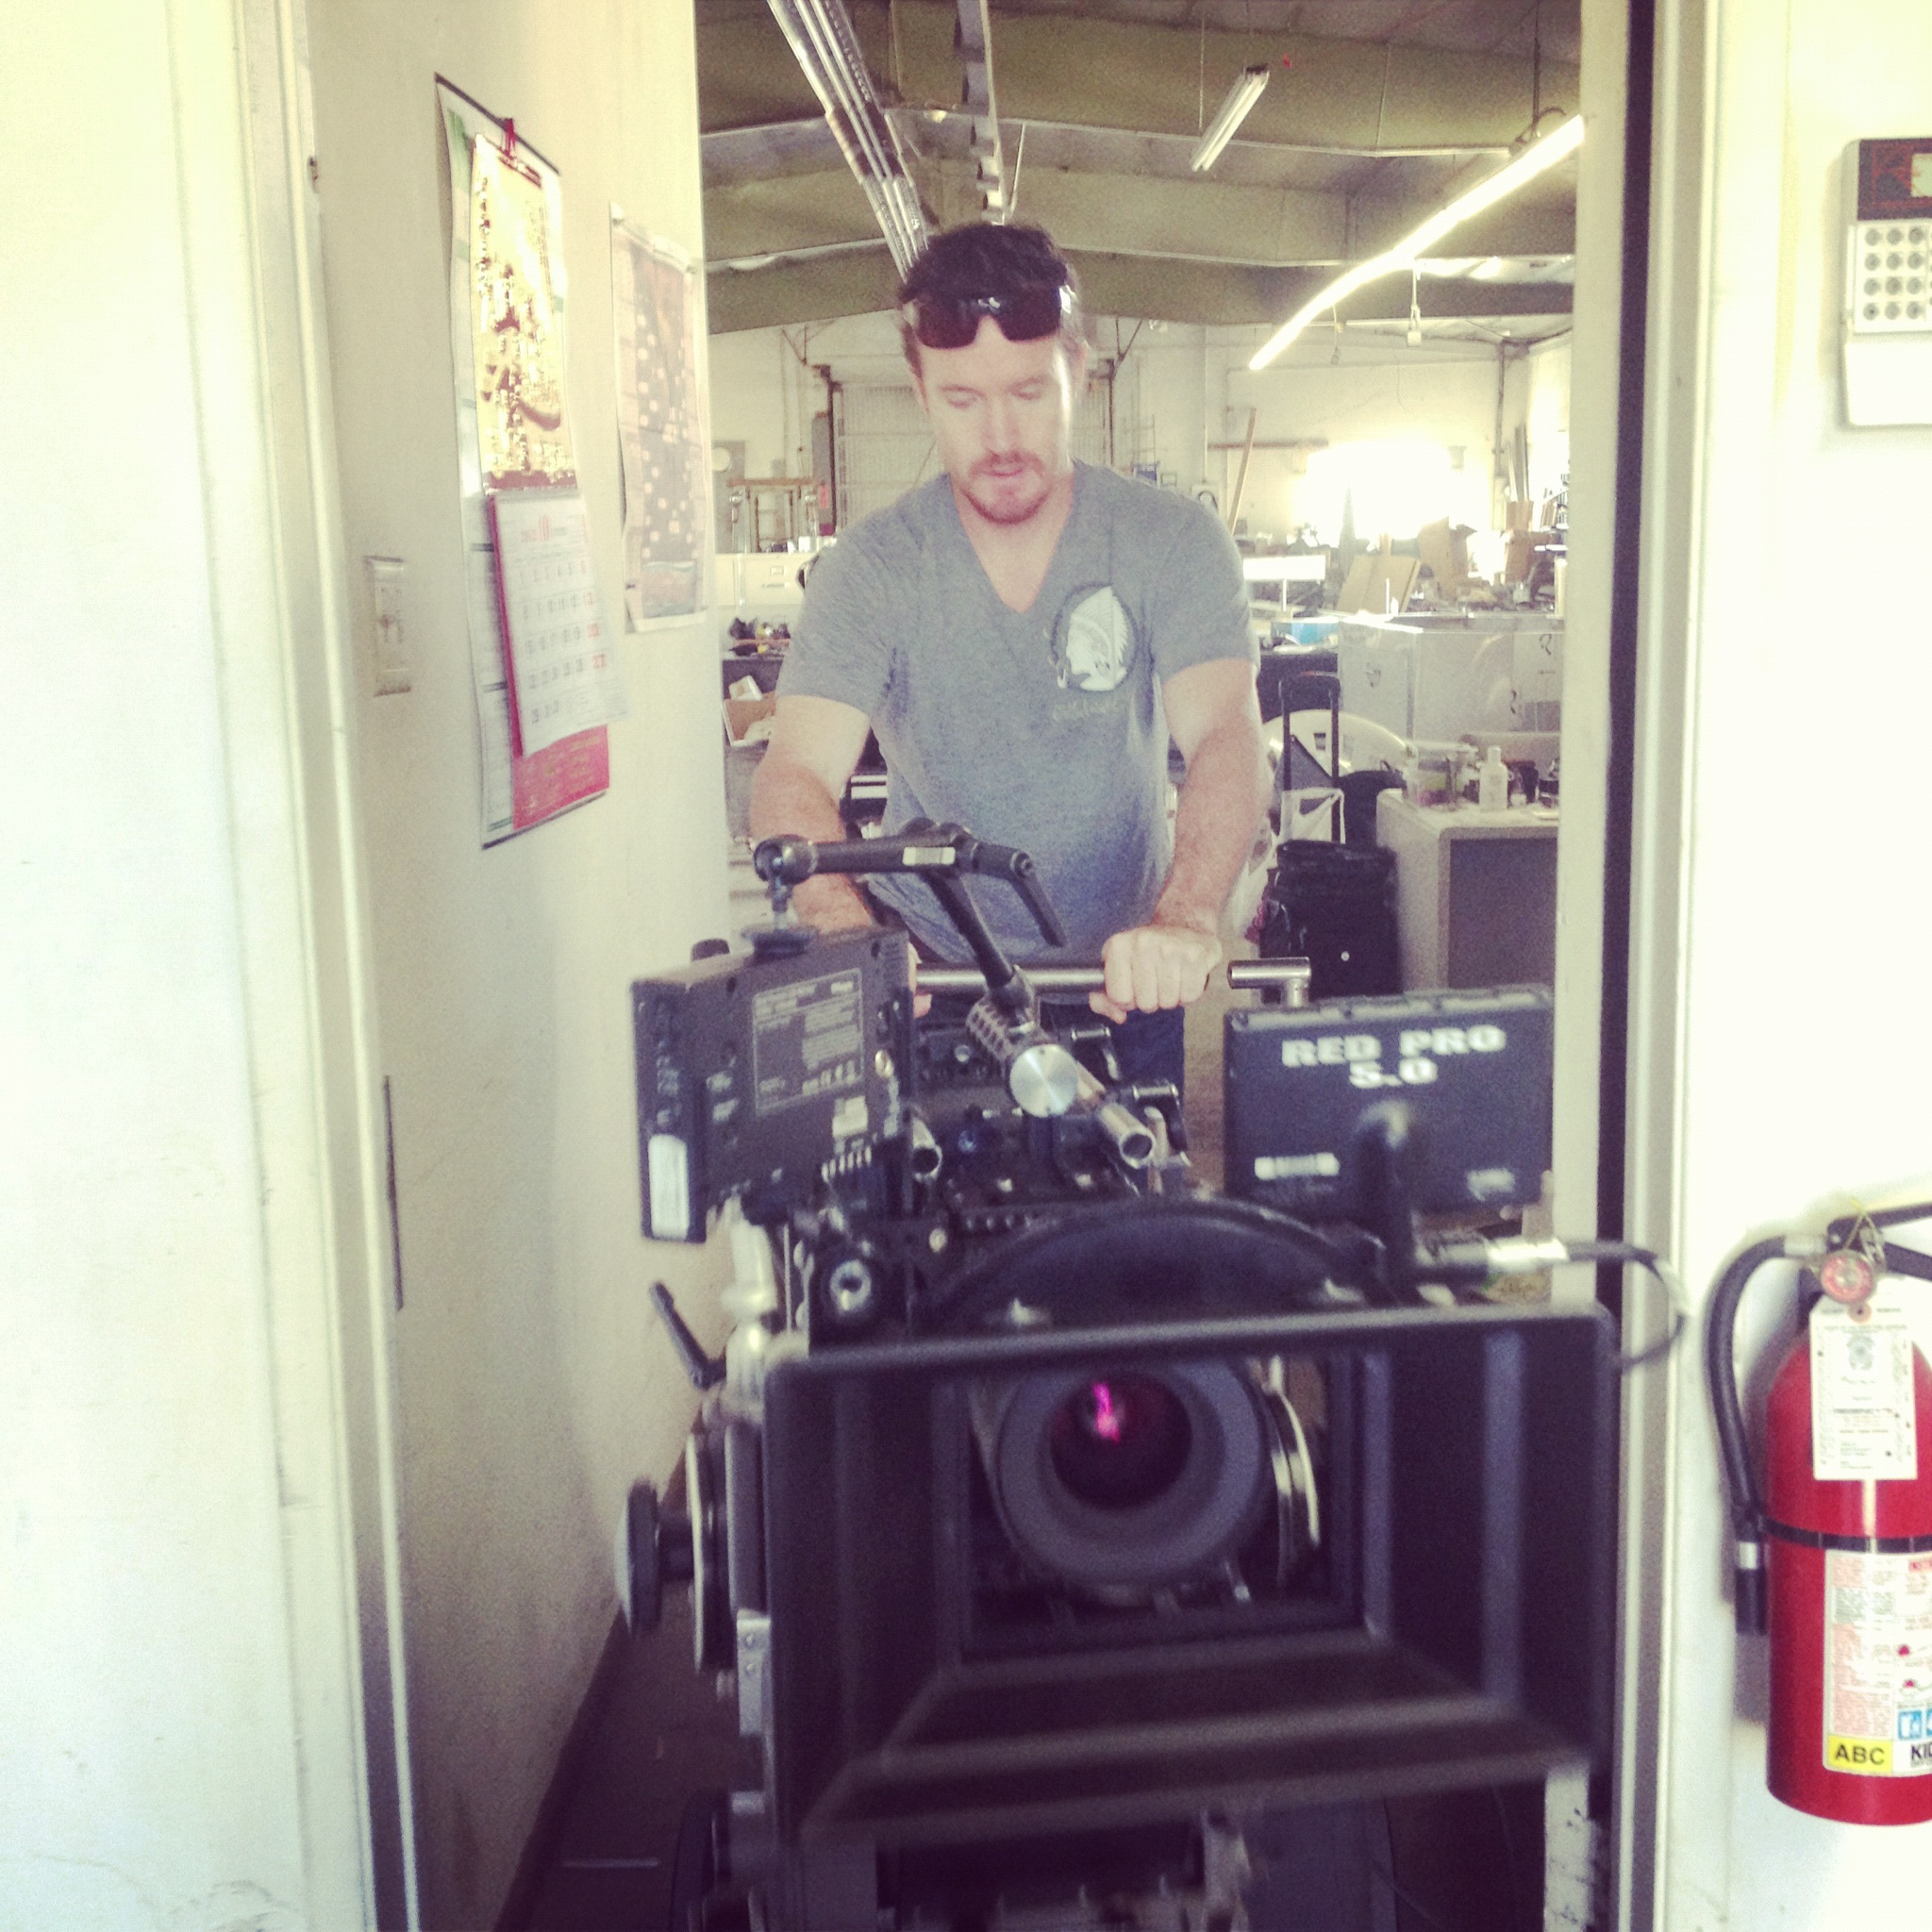 Cam with our Red Epic from Panavision's New Filmmakers Program.